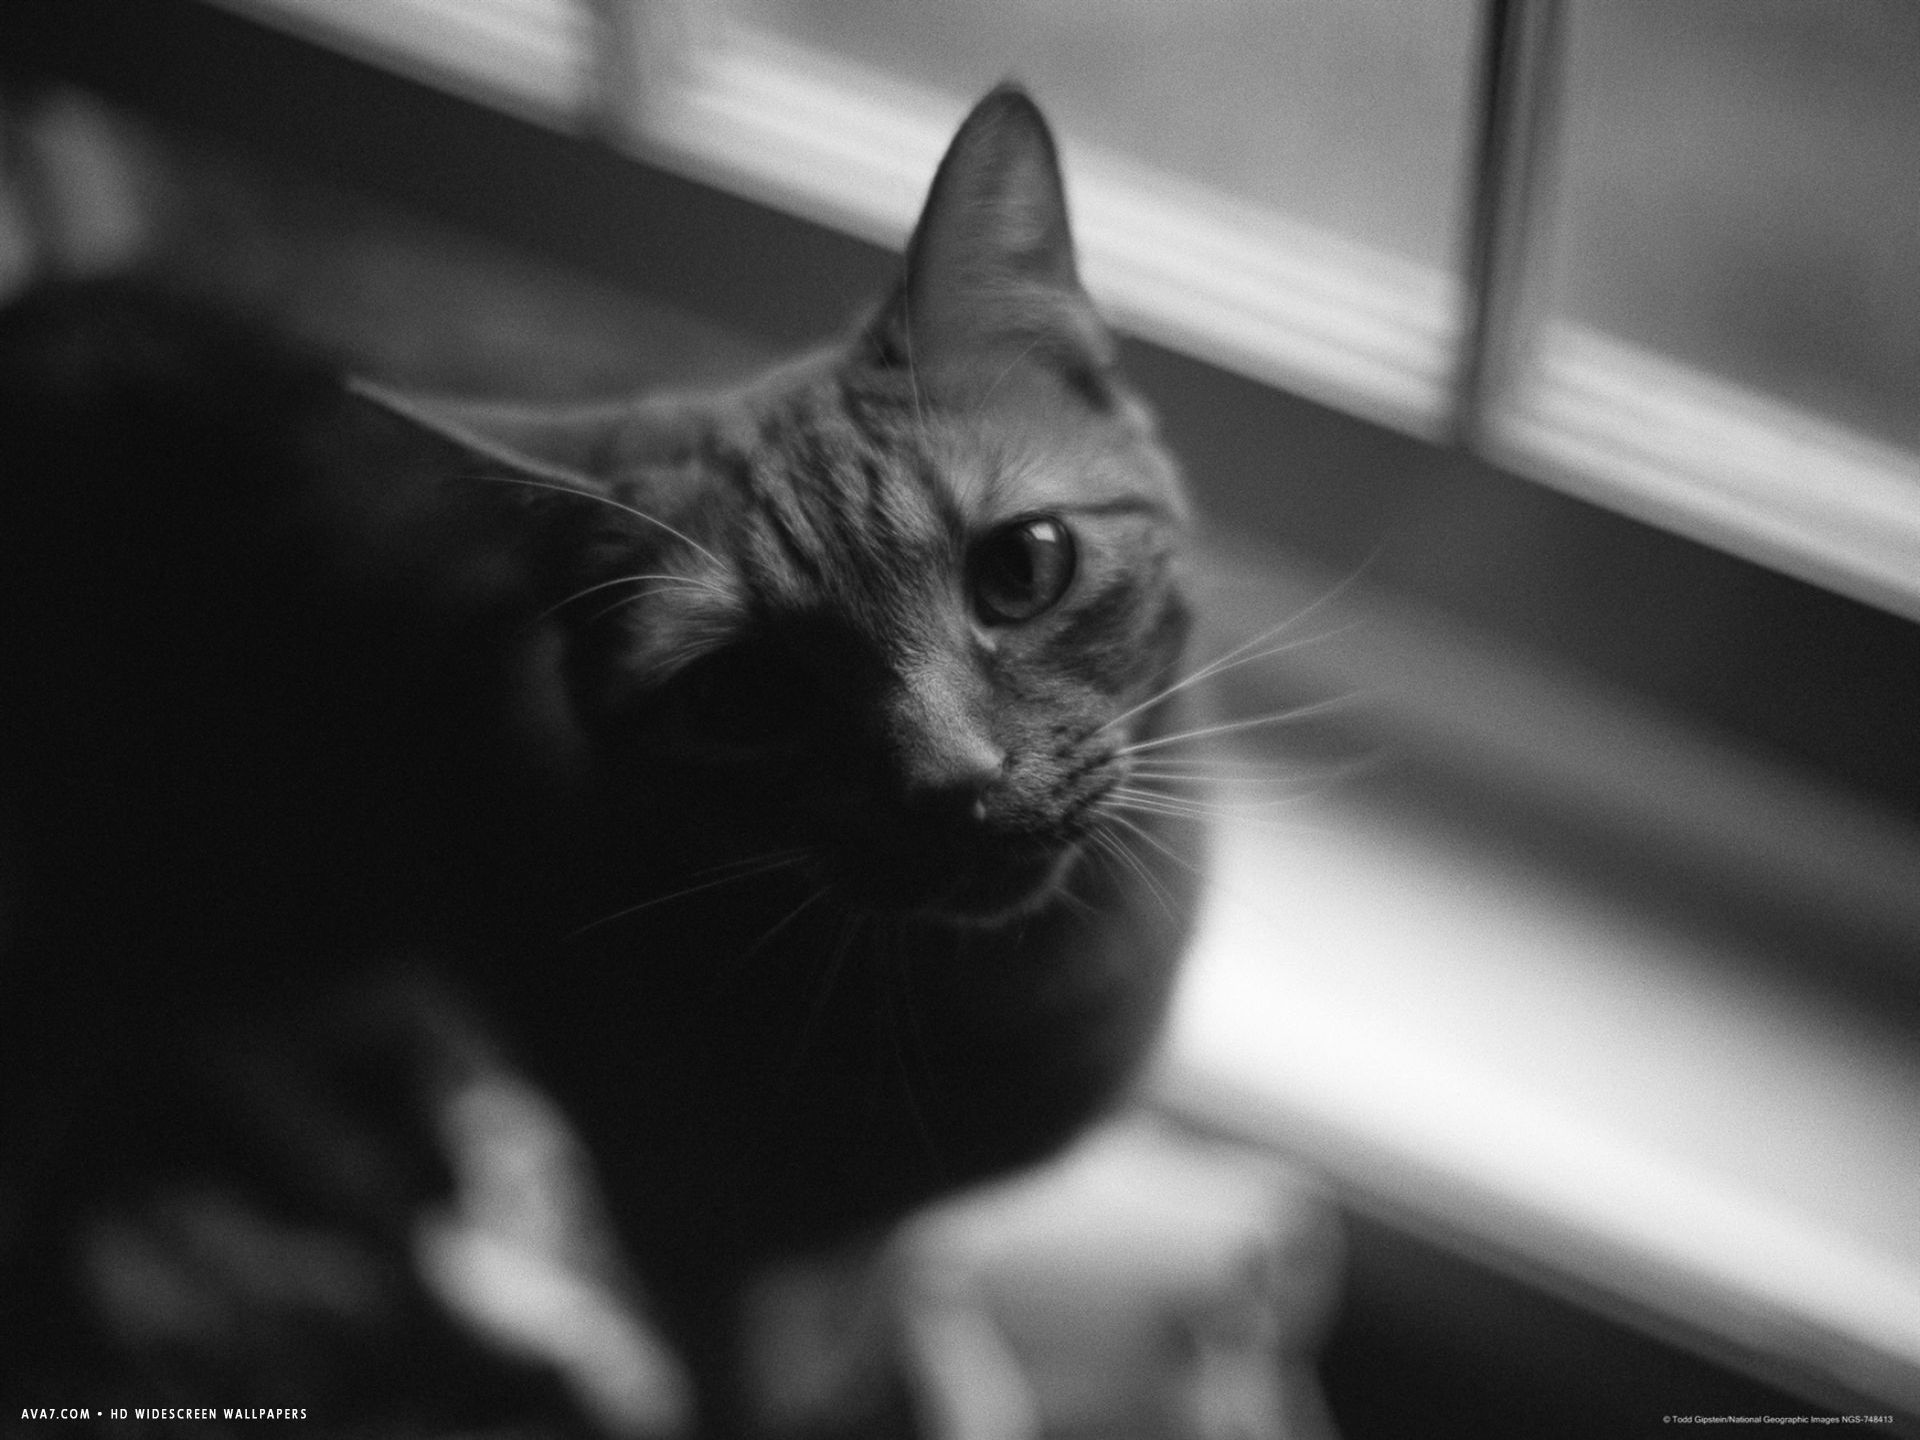 black and white photograph of orange tabby cat looking at photographer